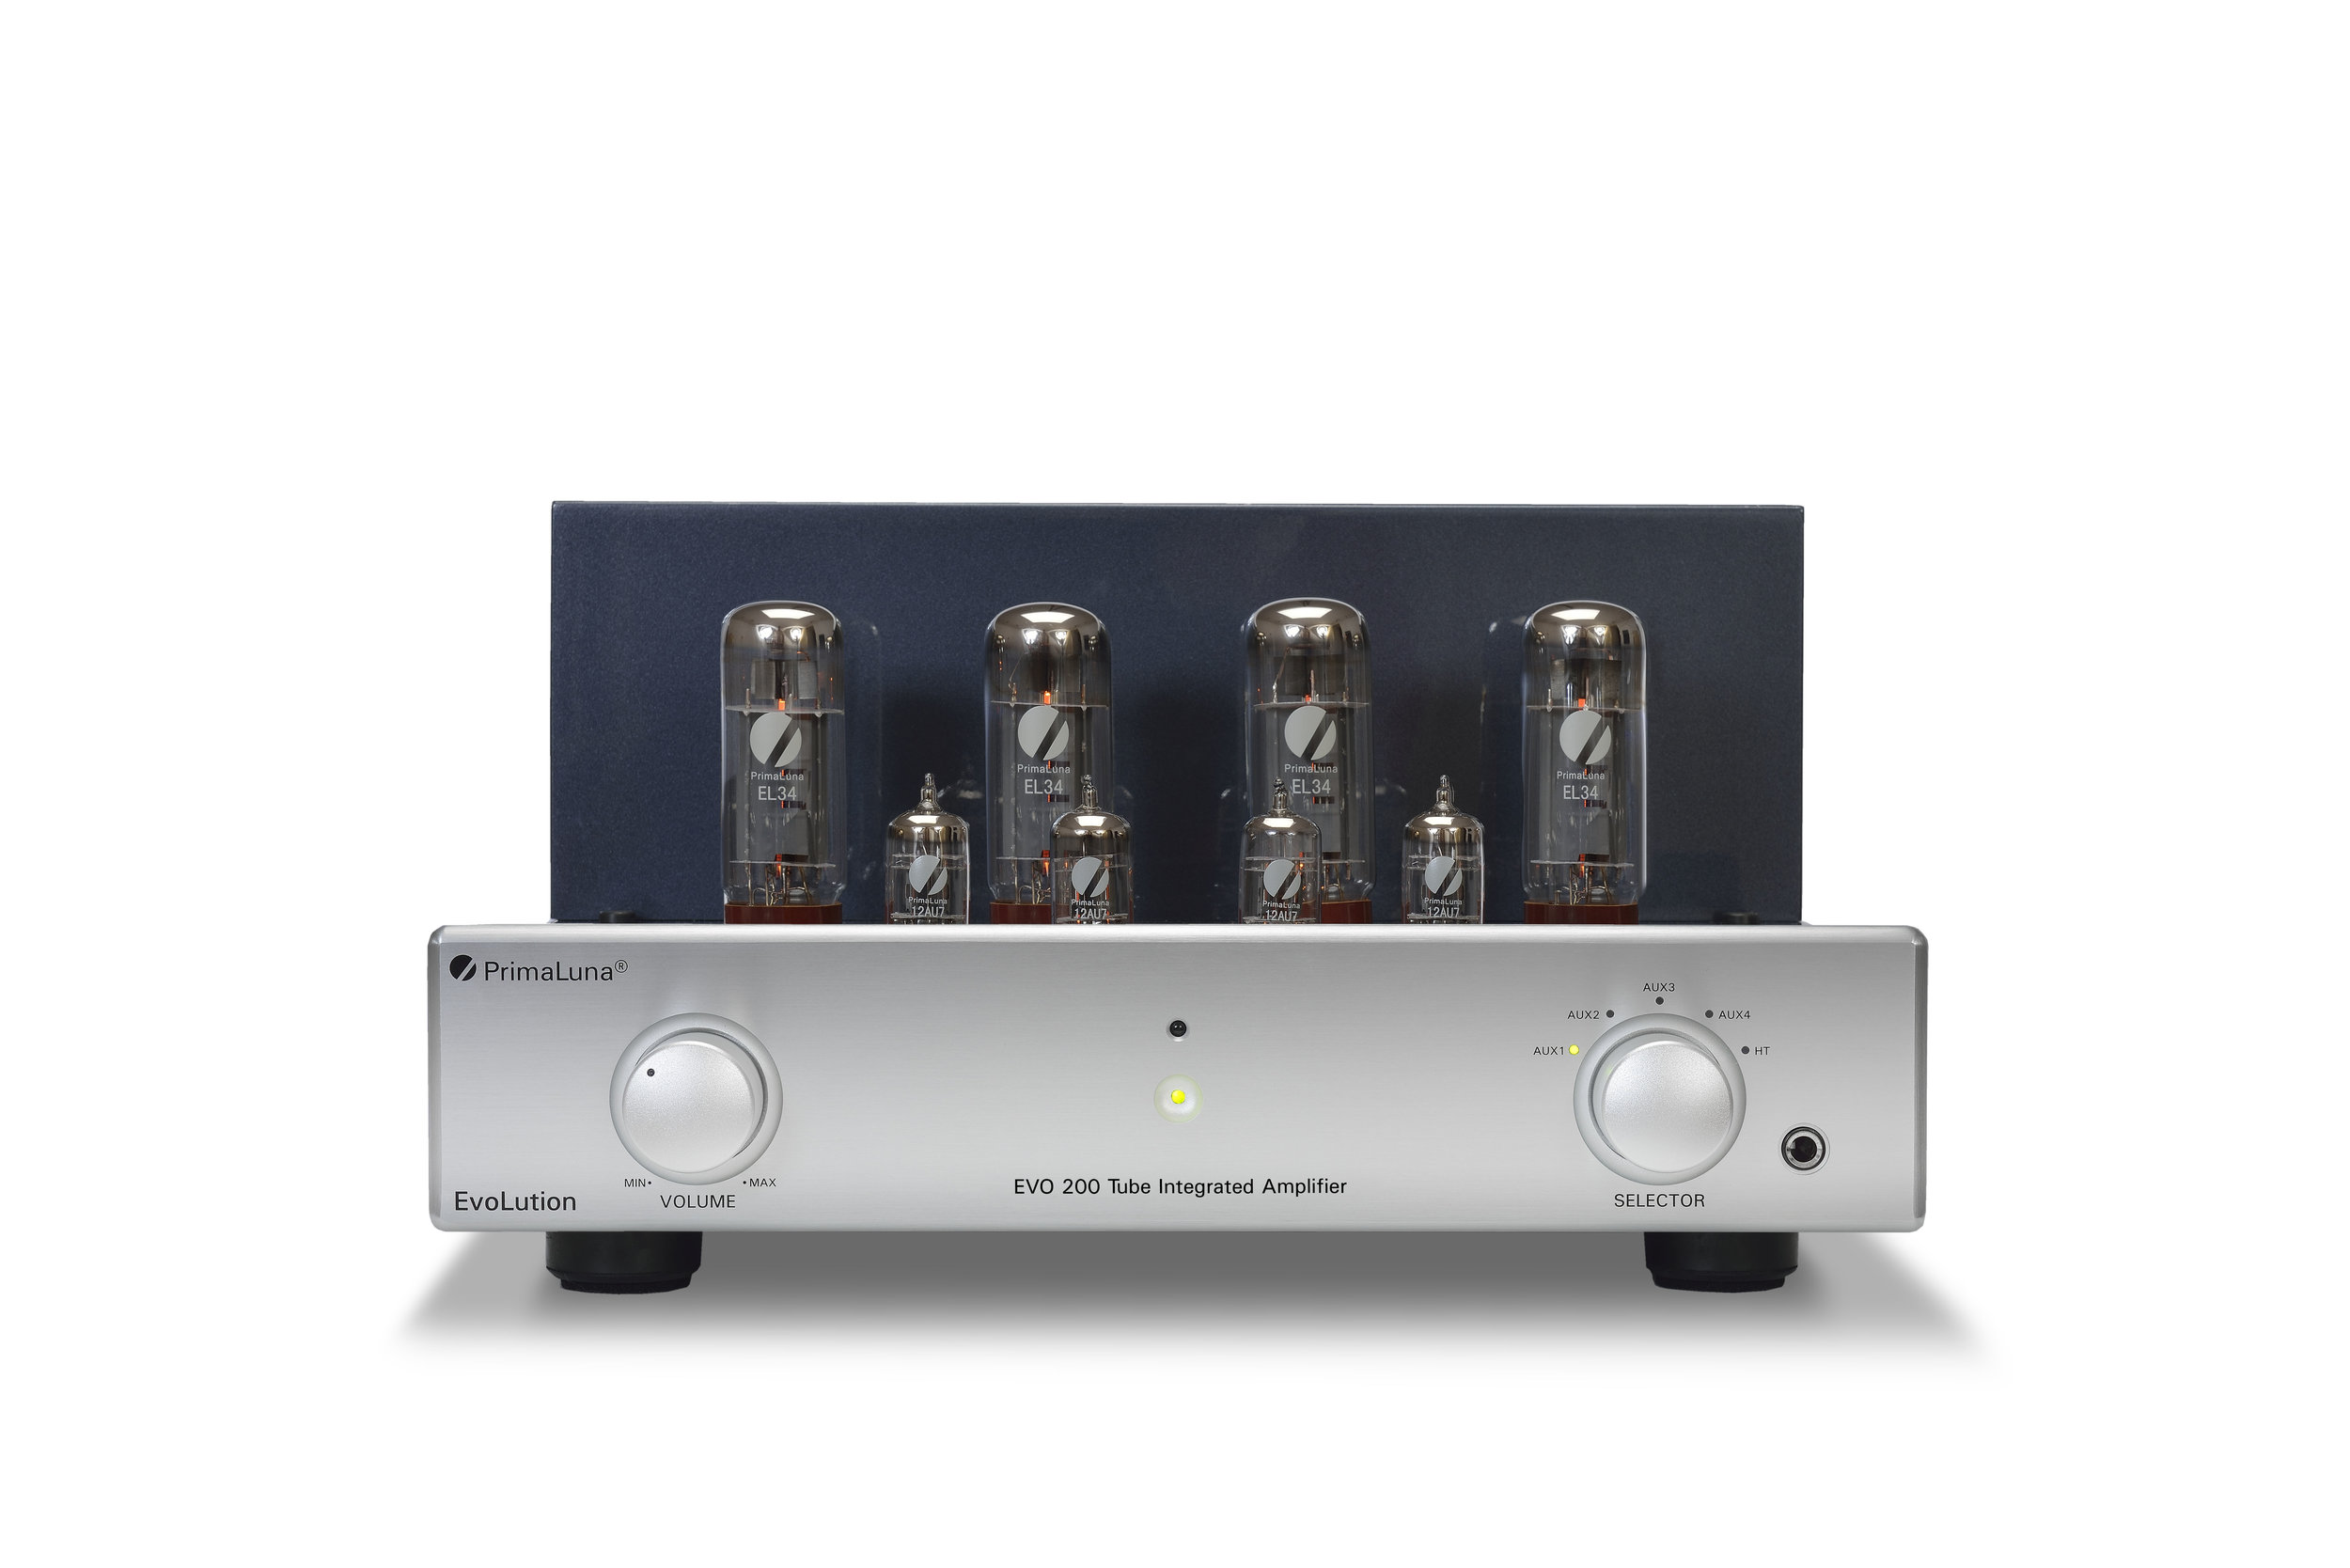 109b - PrimaLuna Evo 200 Tube Integrated Amplifier - silver - front low - white background.jpg